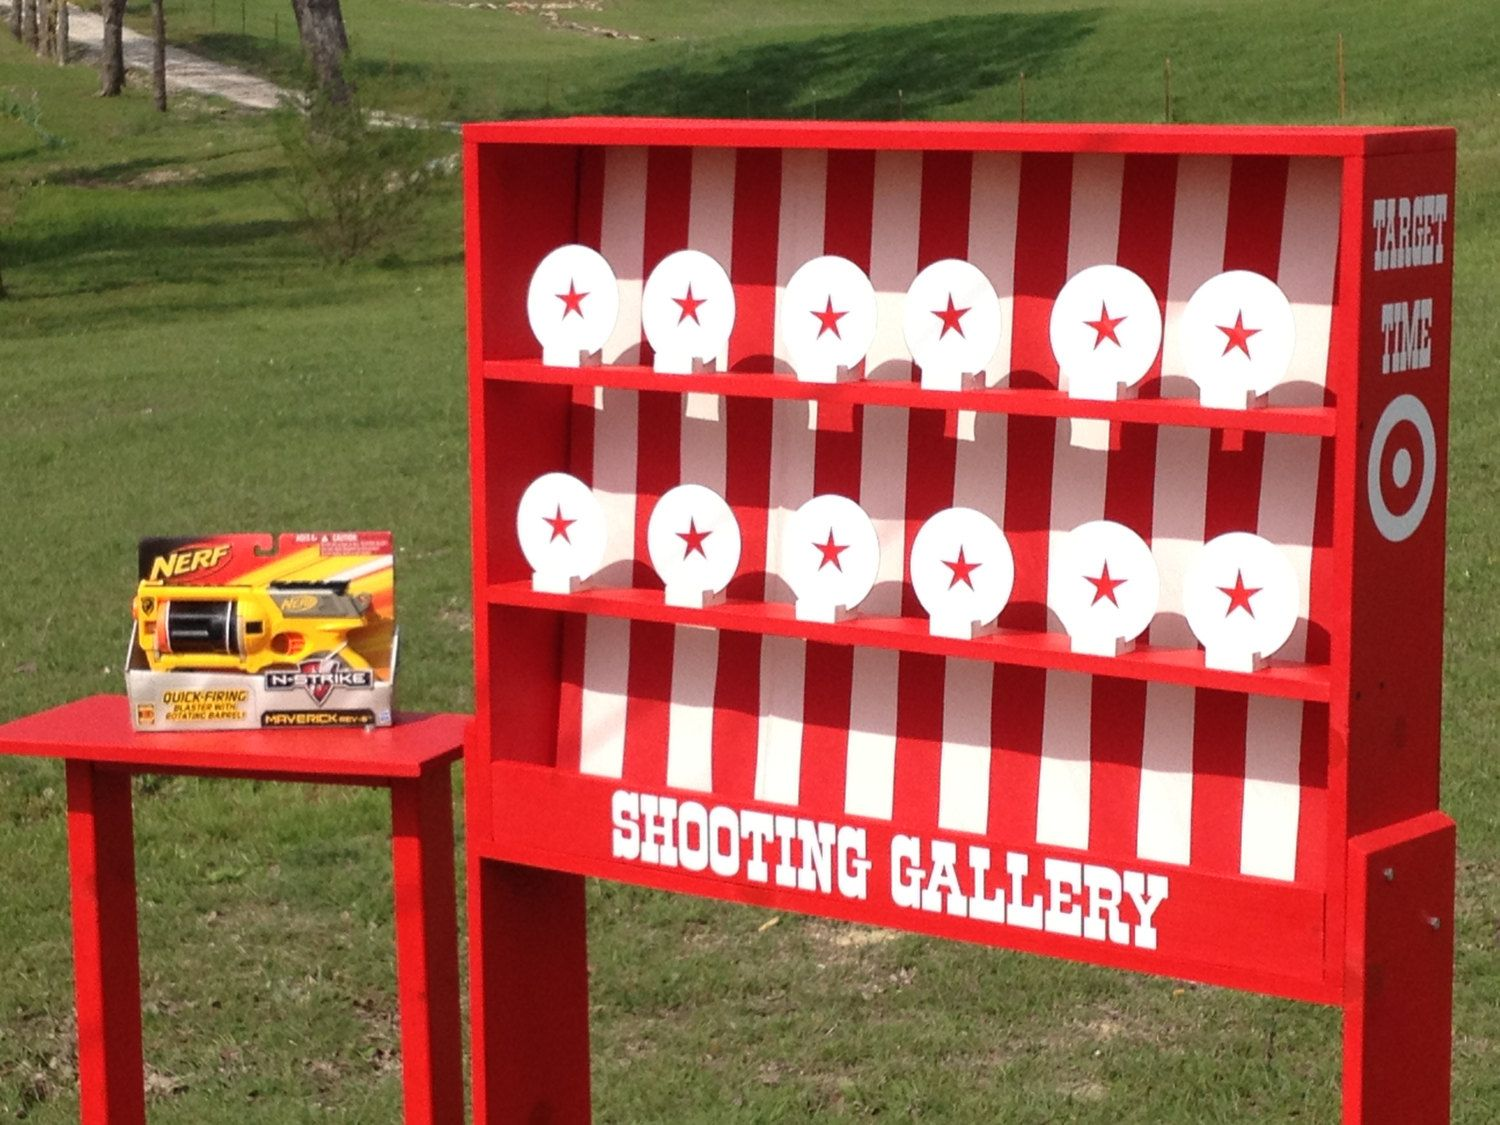 Shooting Gallery Carnival Game Compatible With Nerf Guns